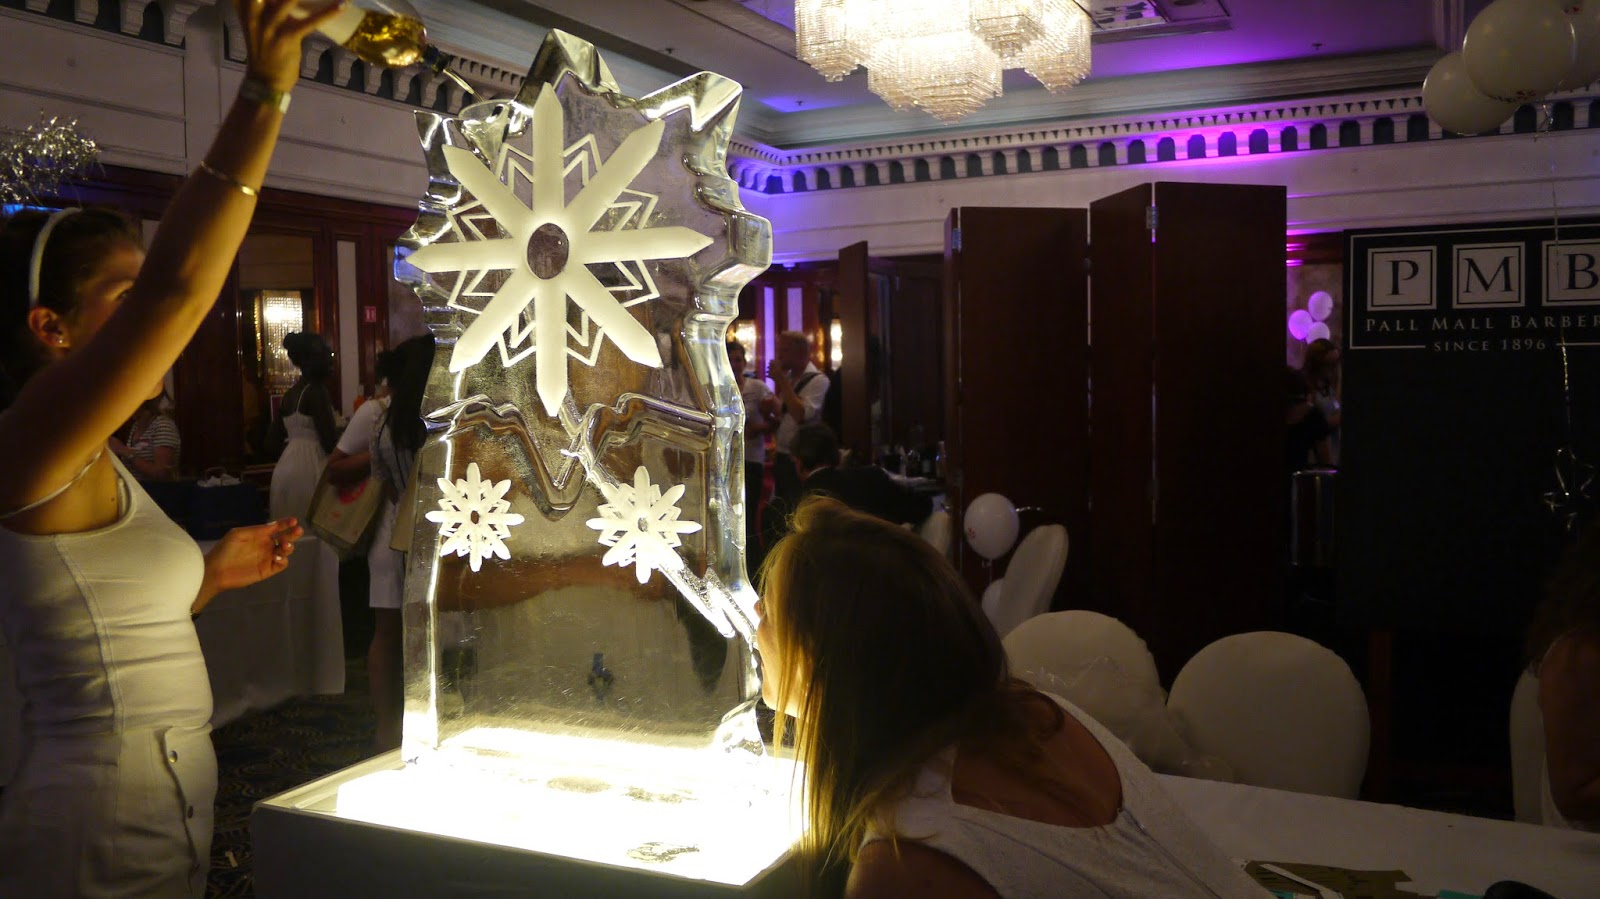 Vodka luge at the Yelp 10th birthday party